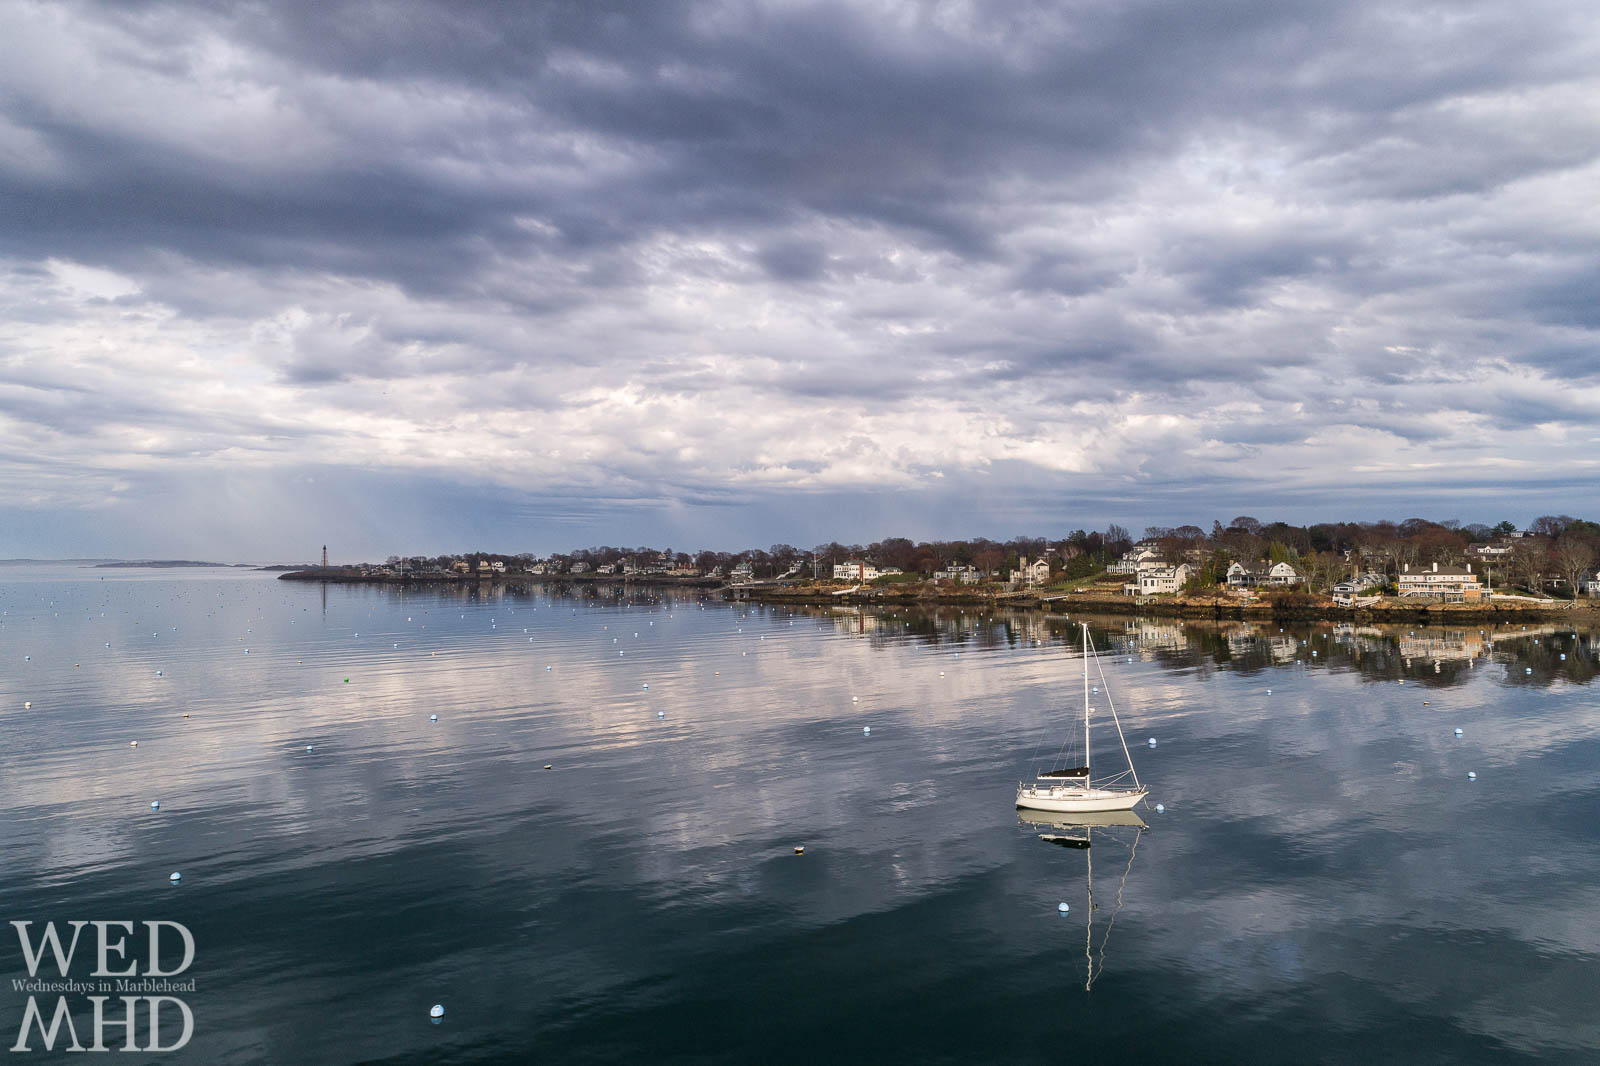 The first sailboat in our harbor is a sure sign that Spring has sprung in Marblehead